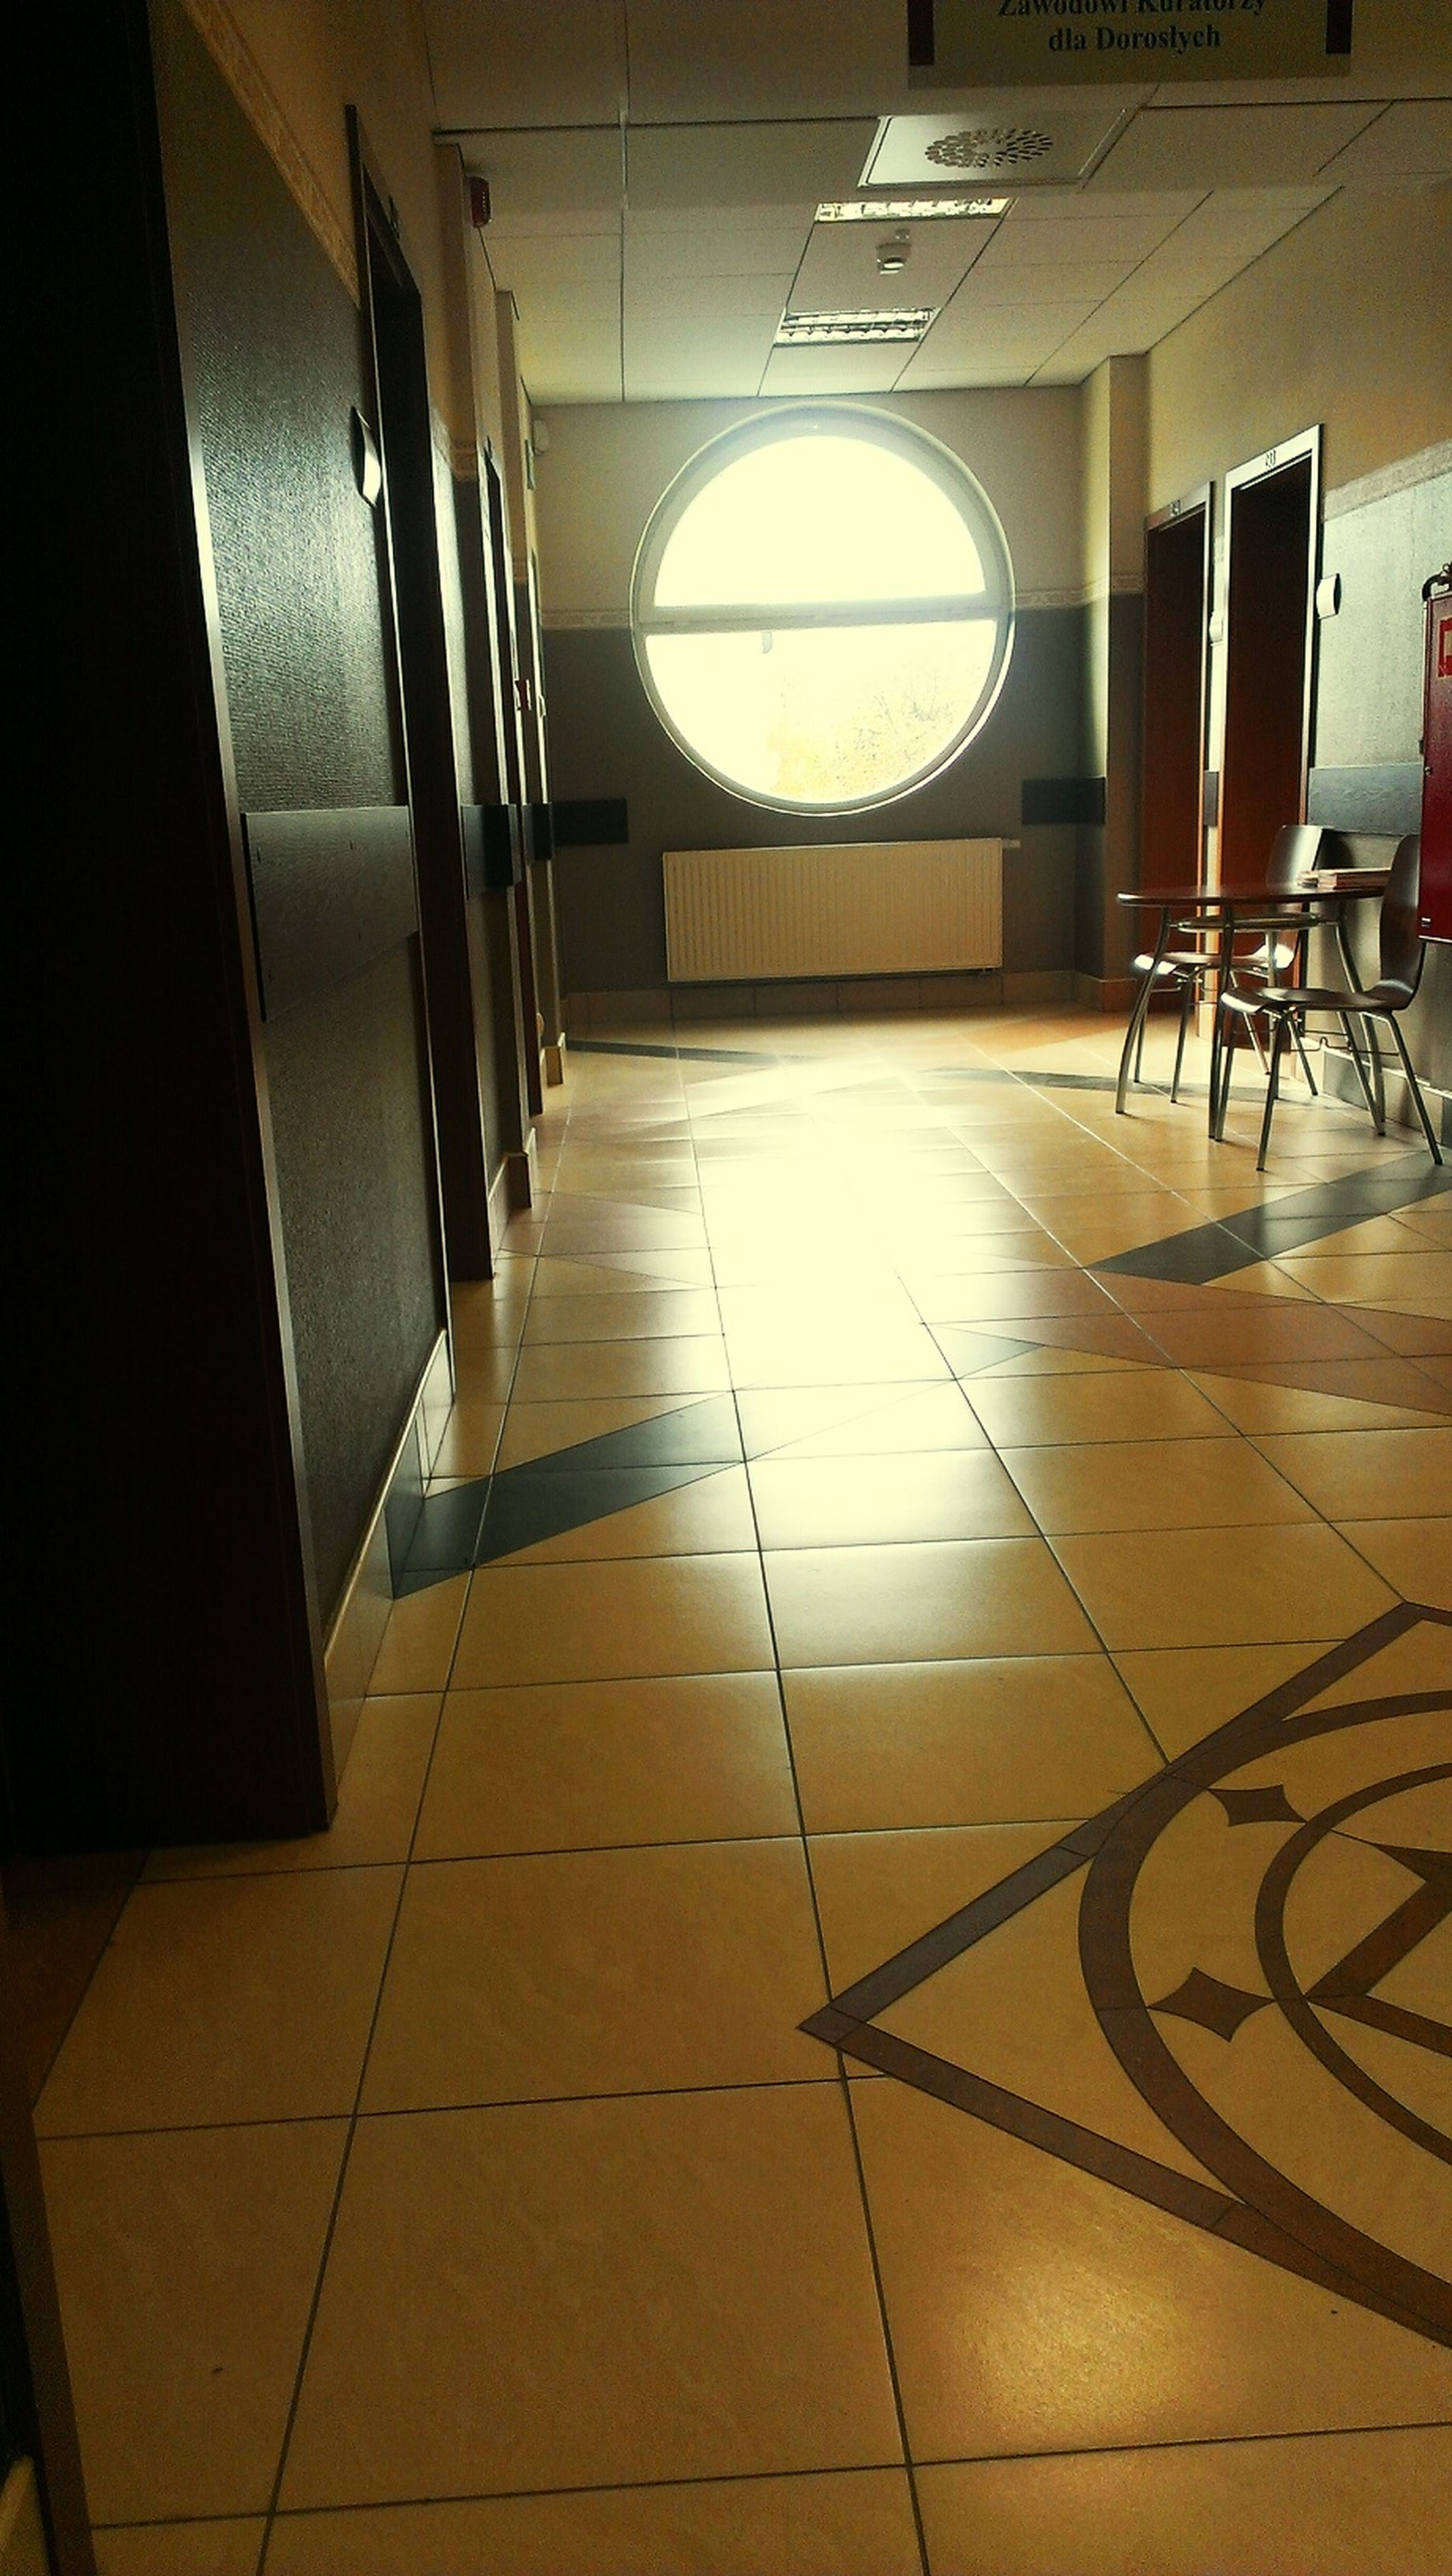 indoors, flooring, tiled floor, empty, architecture, built structure, absence, corridor, ceiling, floor, the way forward, illuminated, sunlight, interior, tile, no people, shadow, diminishing perspective, chair, home interior